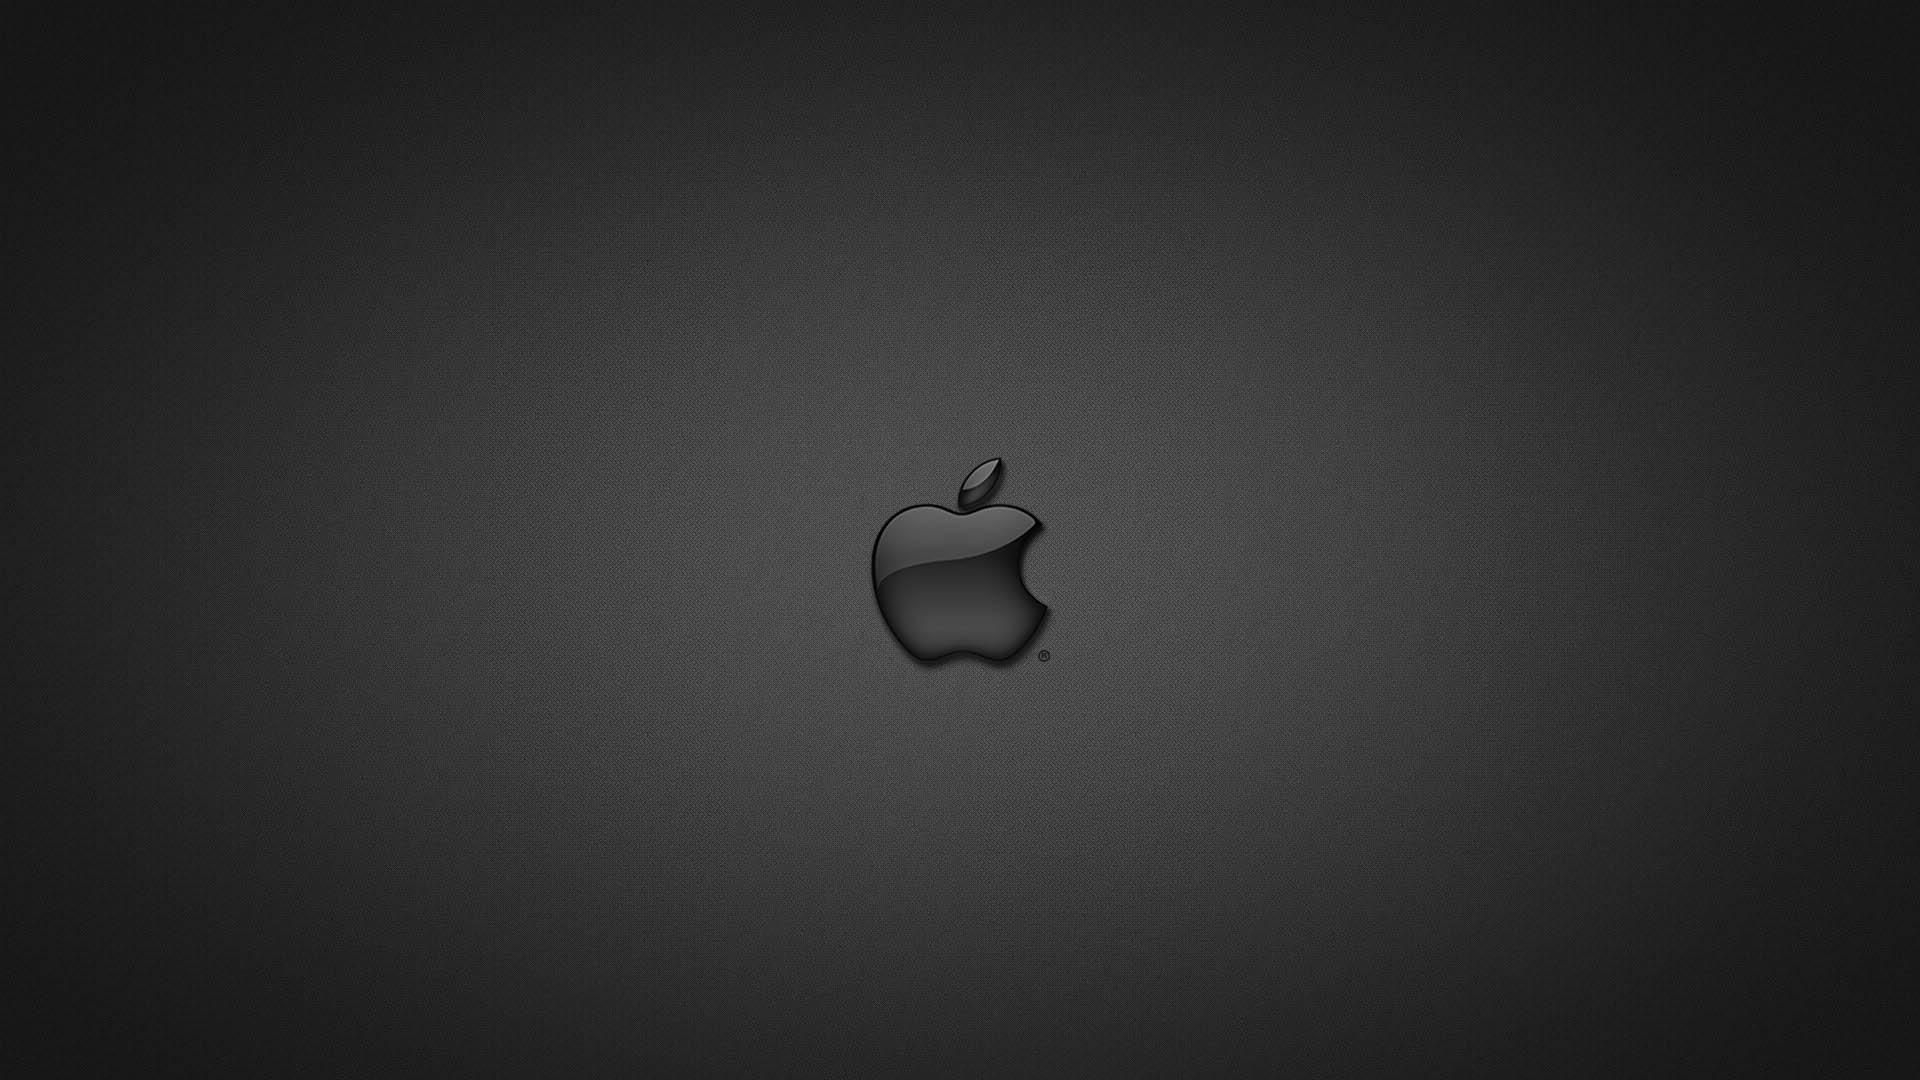 collection of apple hd wallpapers on hdwallpapers apple hd wallpaper wallpapers